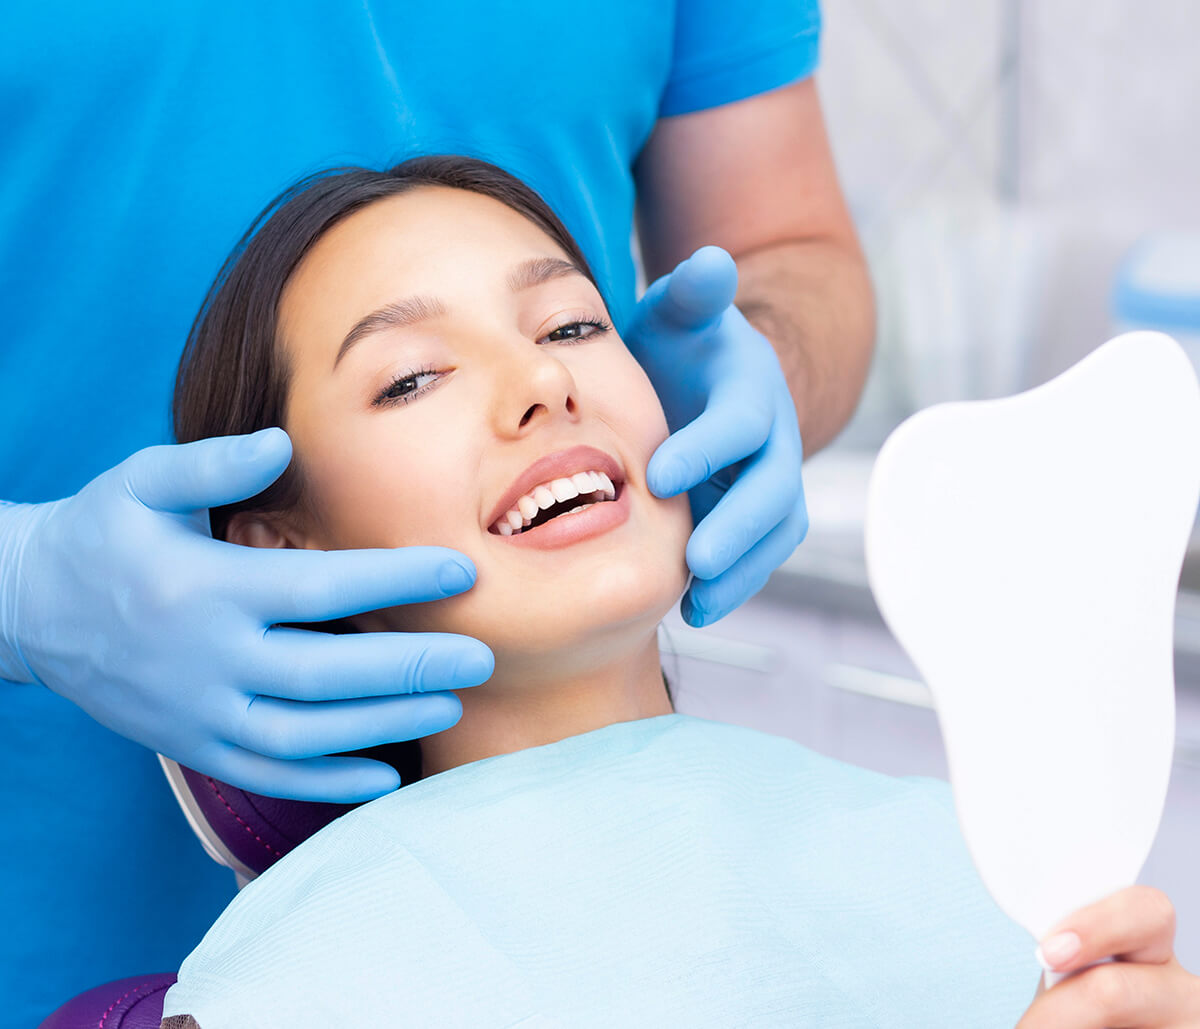 Cosmetic dental office in Knoxville, TN offers care and attention for beautiful smiles!